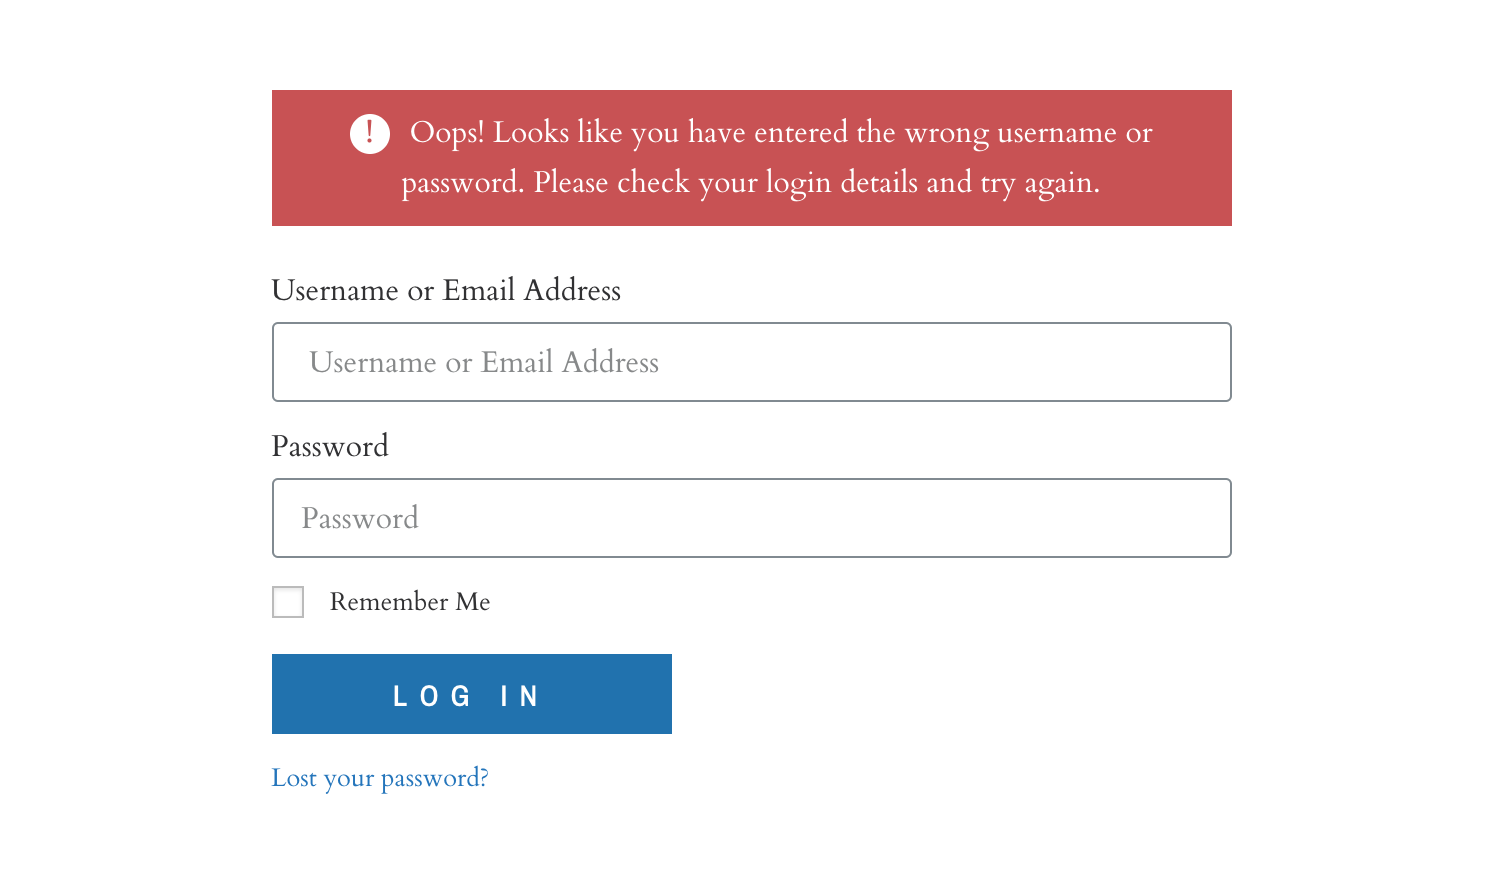 Elementor: On failed logins on the login form, redirect back to the login page and add a failed message